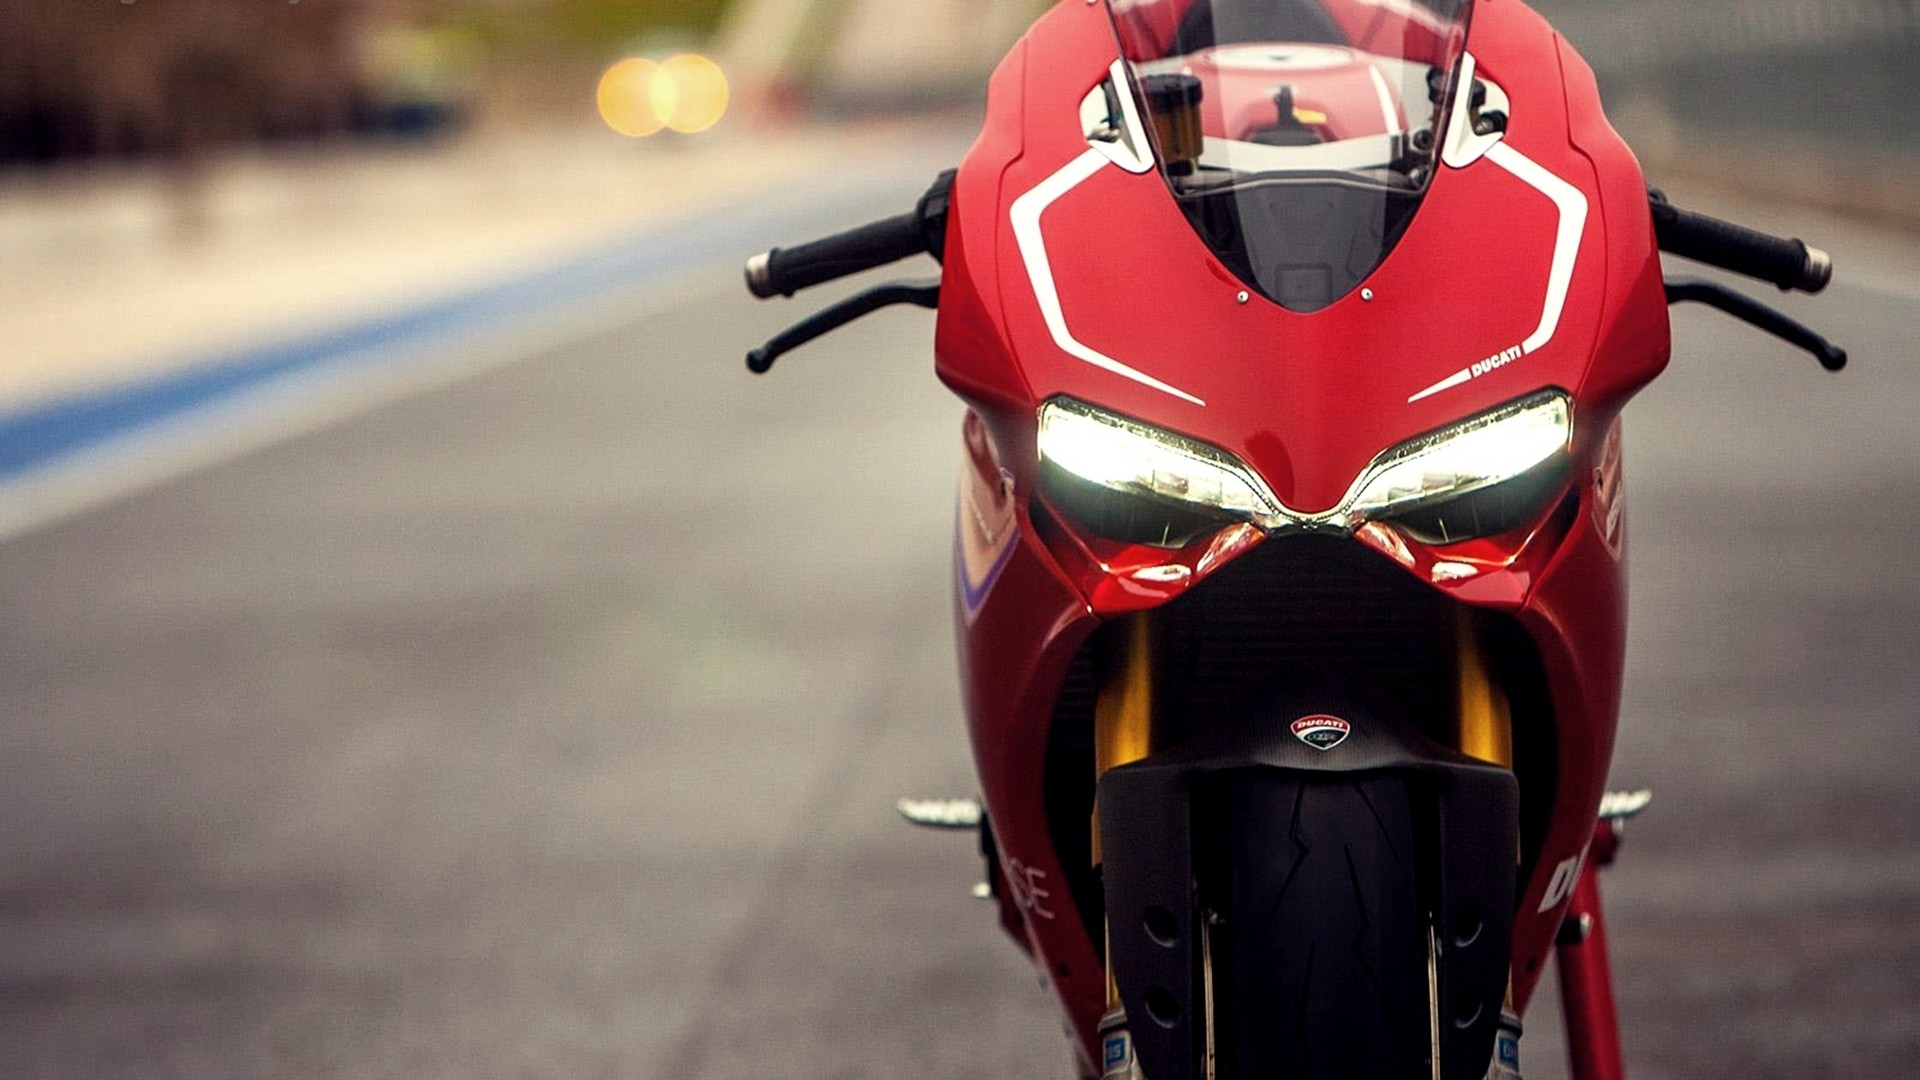 Ducati Motobike Wallpapers For Pc: Ducati, HD Bikes, 4k Wallpapers, Images, Backgrounds